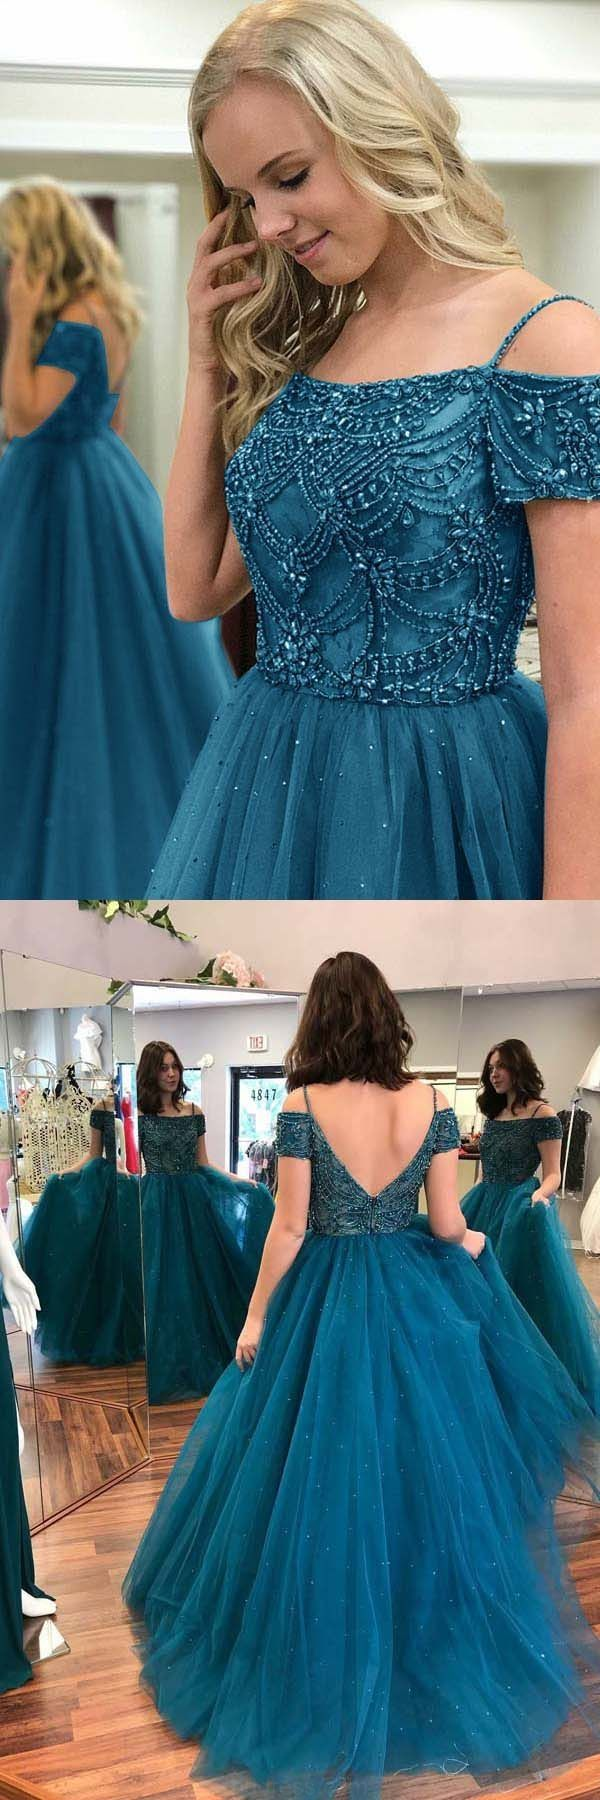 Simple Prom Dresses, High Low Prom Dresses, #bluepromdresses, #lacepromdresses, Lace Prom Dresses 2018, Long Prom Dresses, Ball Gown Prom Dresses, Blue Prom Dresses 2018, 2018 Prom Dresses, #longpromdresses, Lace Prom Dresses, #2018promdresses, Blue Prom Dresses, Long Prom Dresses 2018